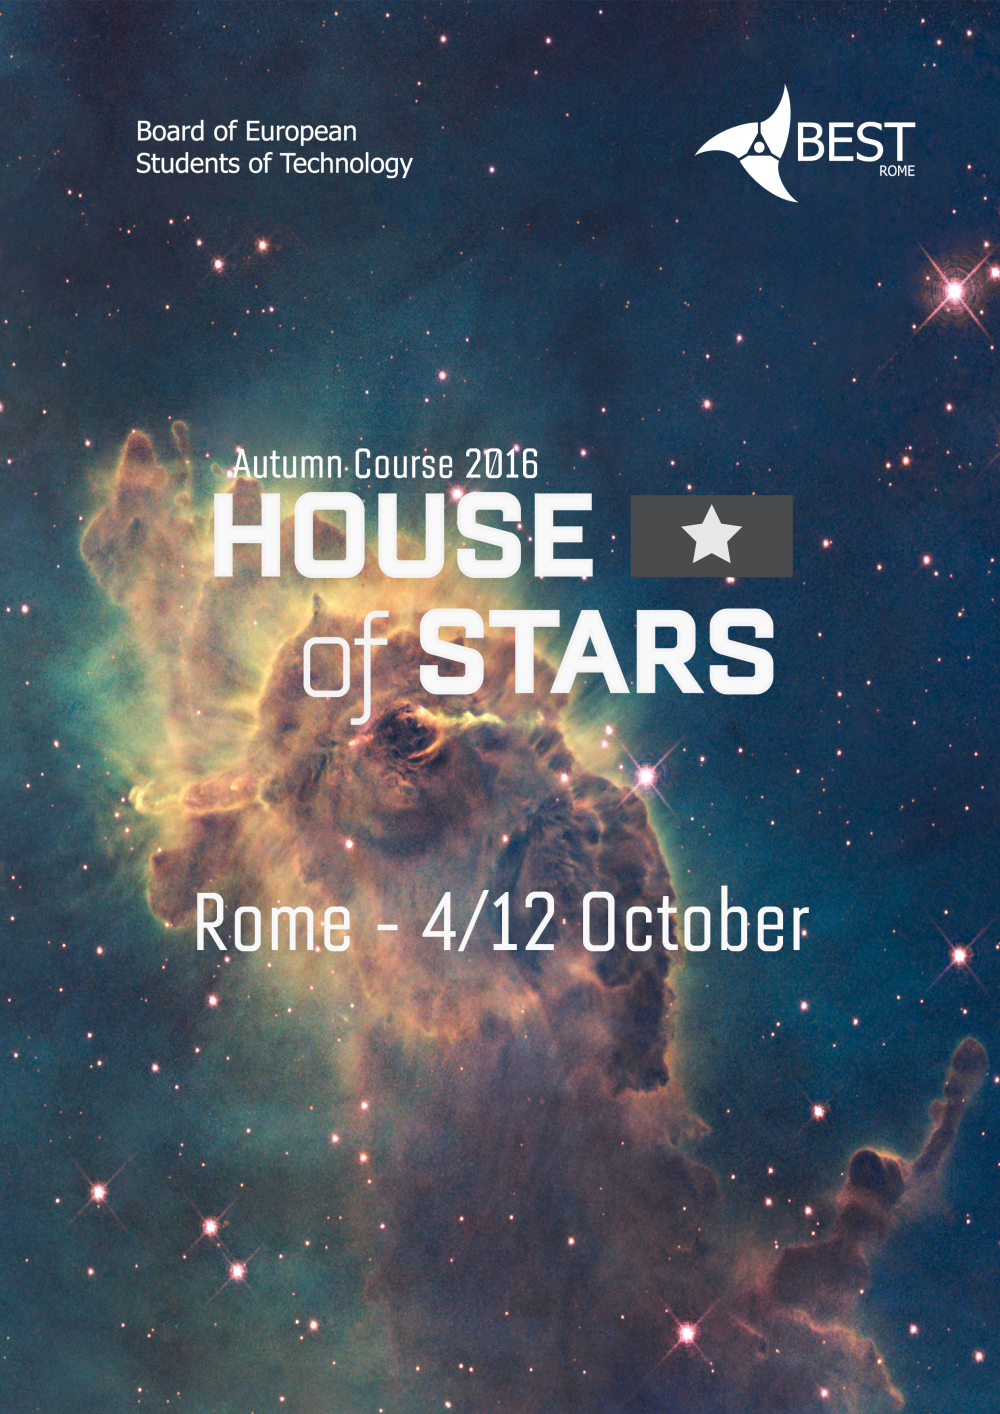 House of Stars – Autumn Course 2016